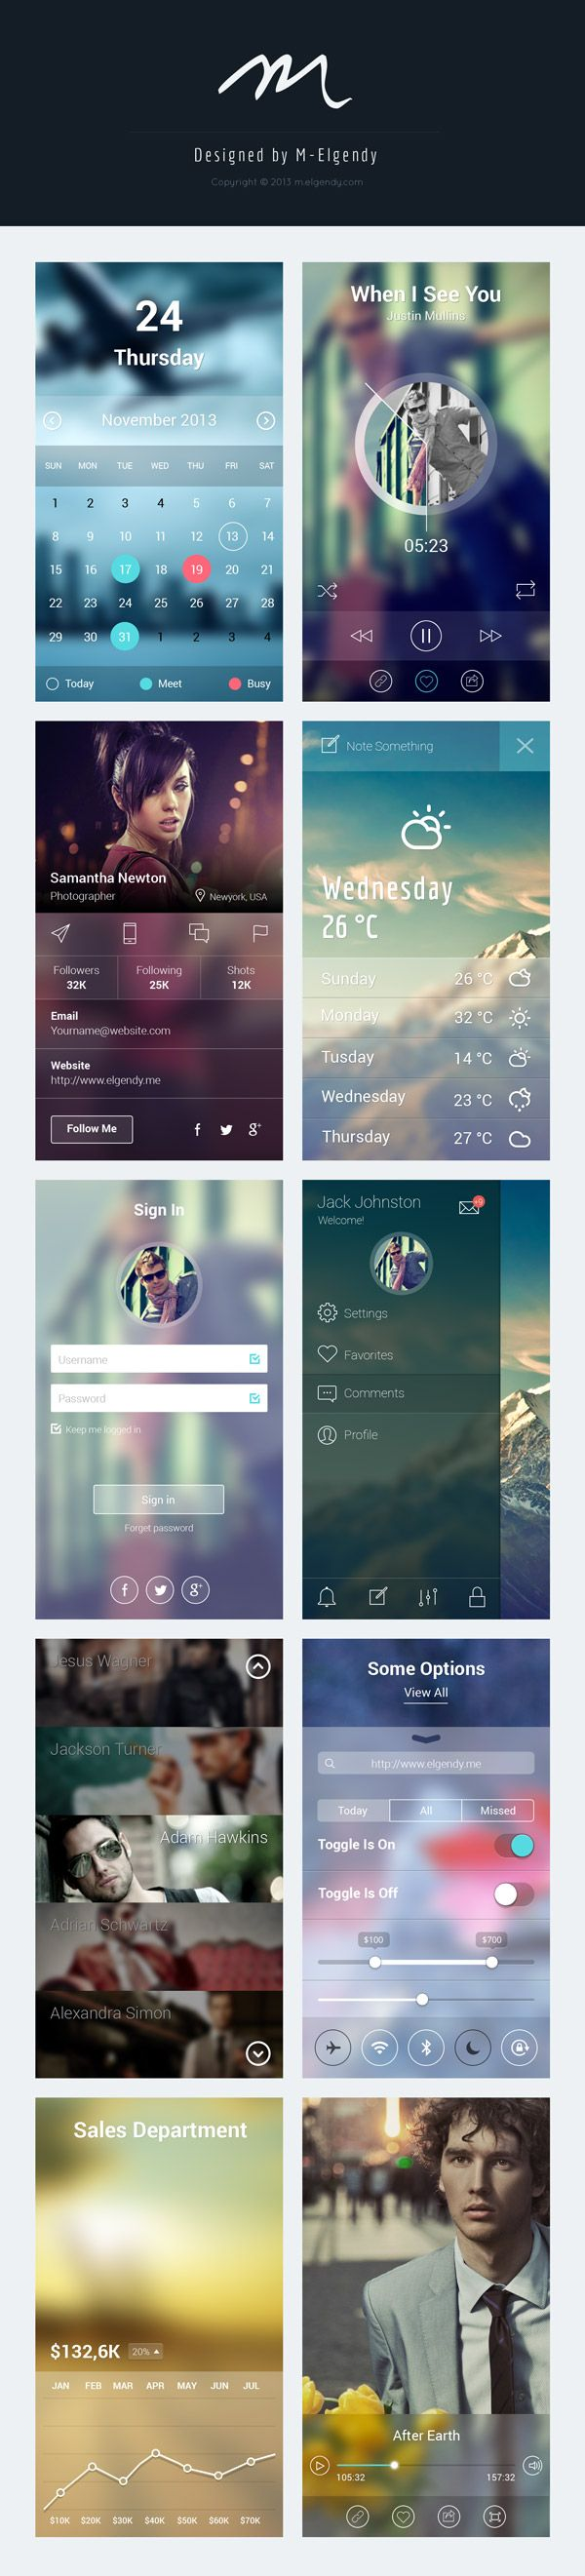 Screens ui kit in ios 7 style